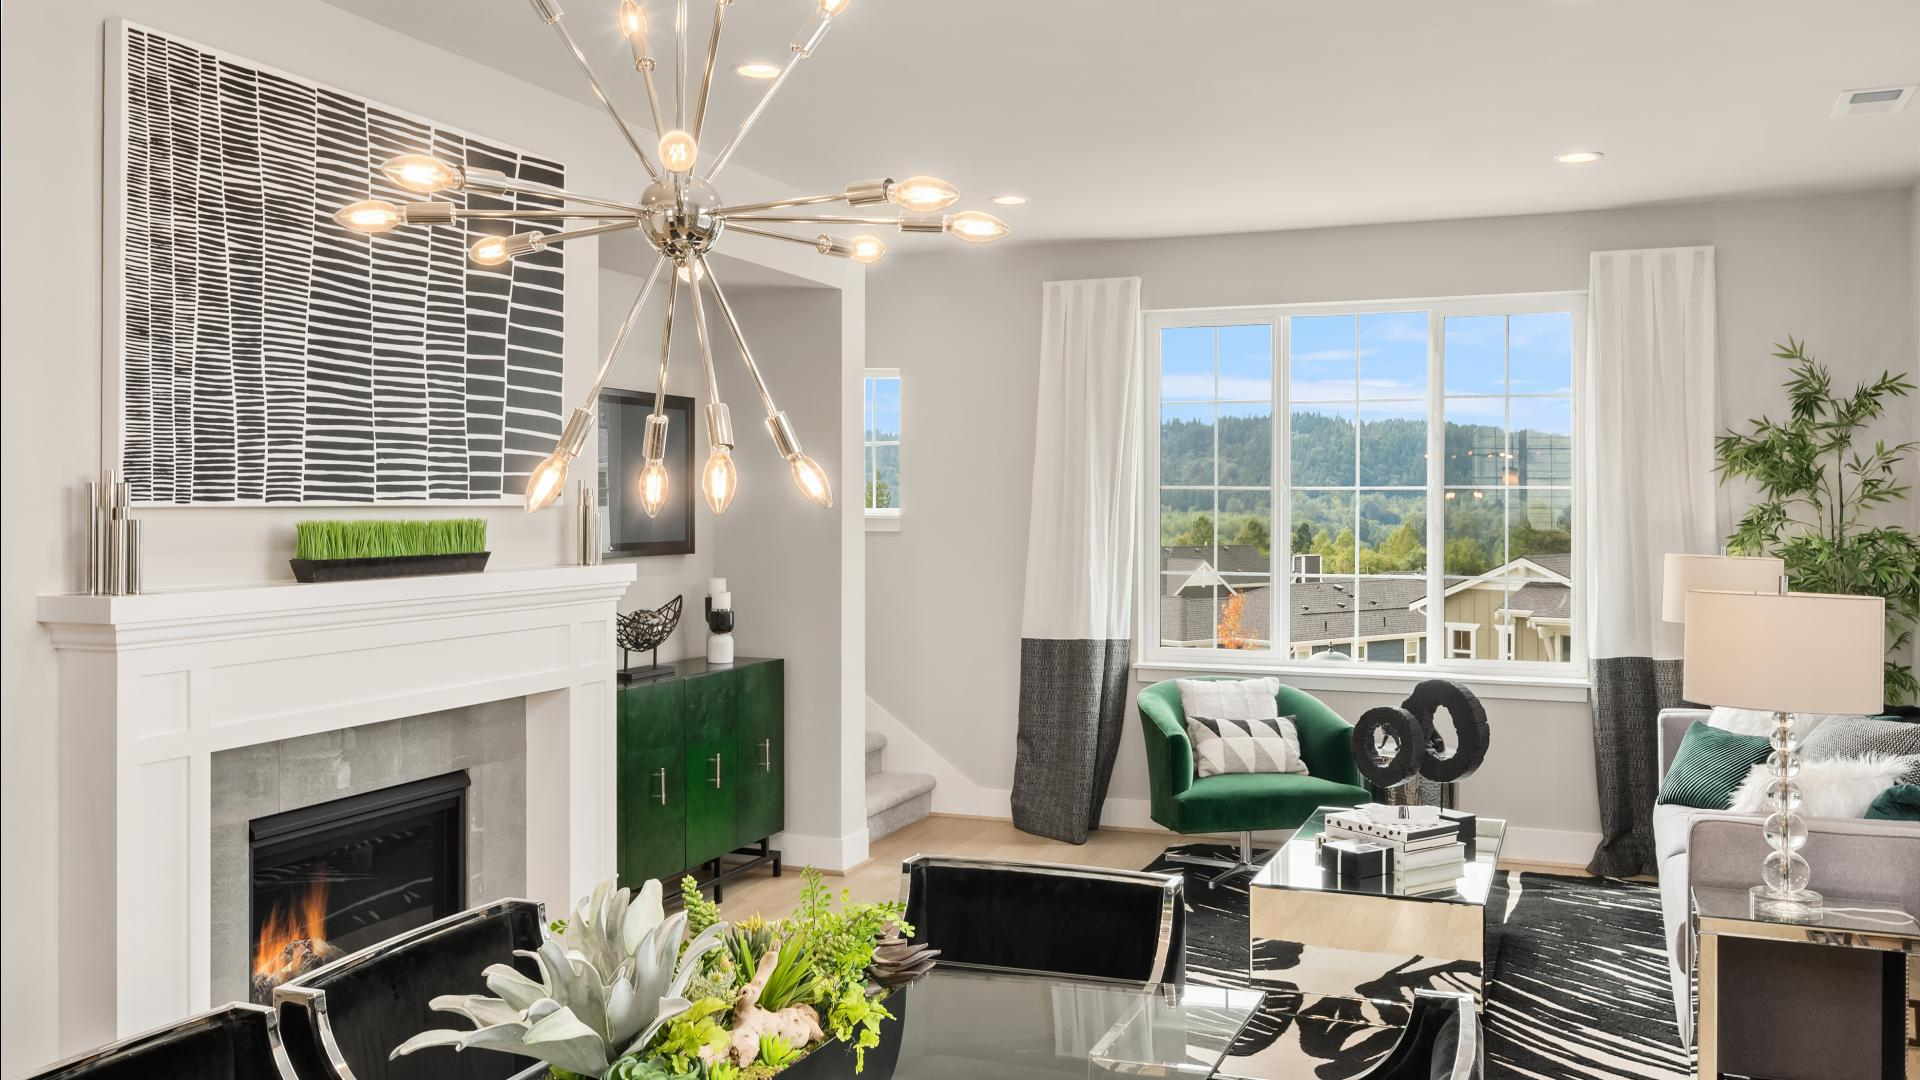 The Hancock offers a bright, open concept great room with cozy gas fireplace